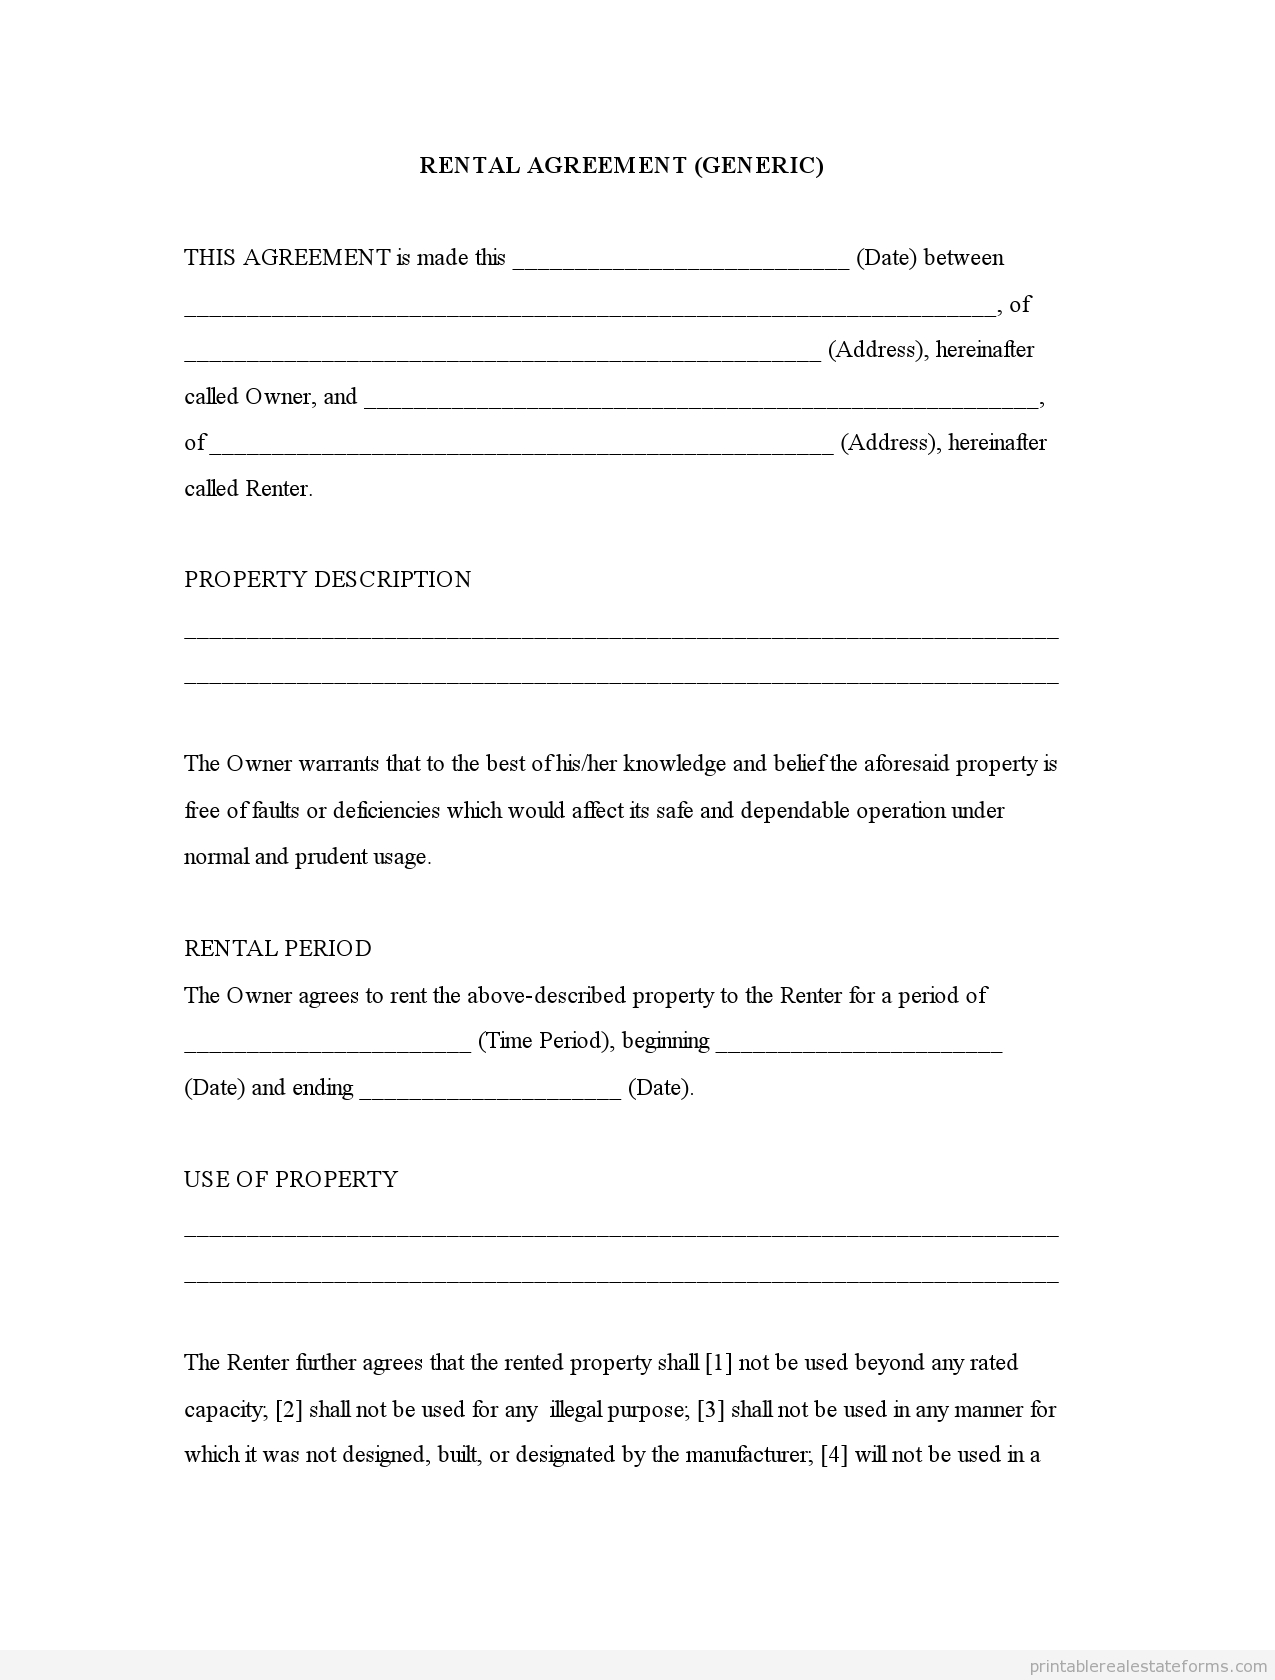 Free Printable Rental Agreement | Rental Agreement (Generic)0001 - Free Printable Rental Agreement